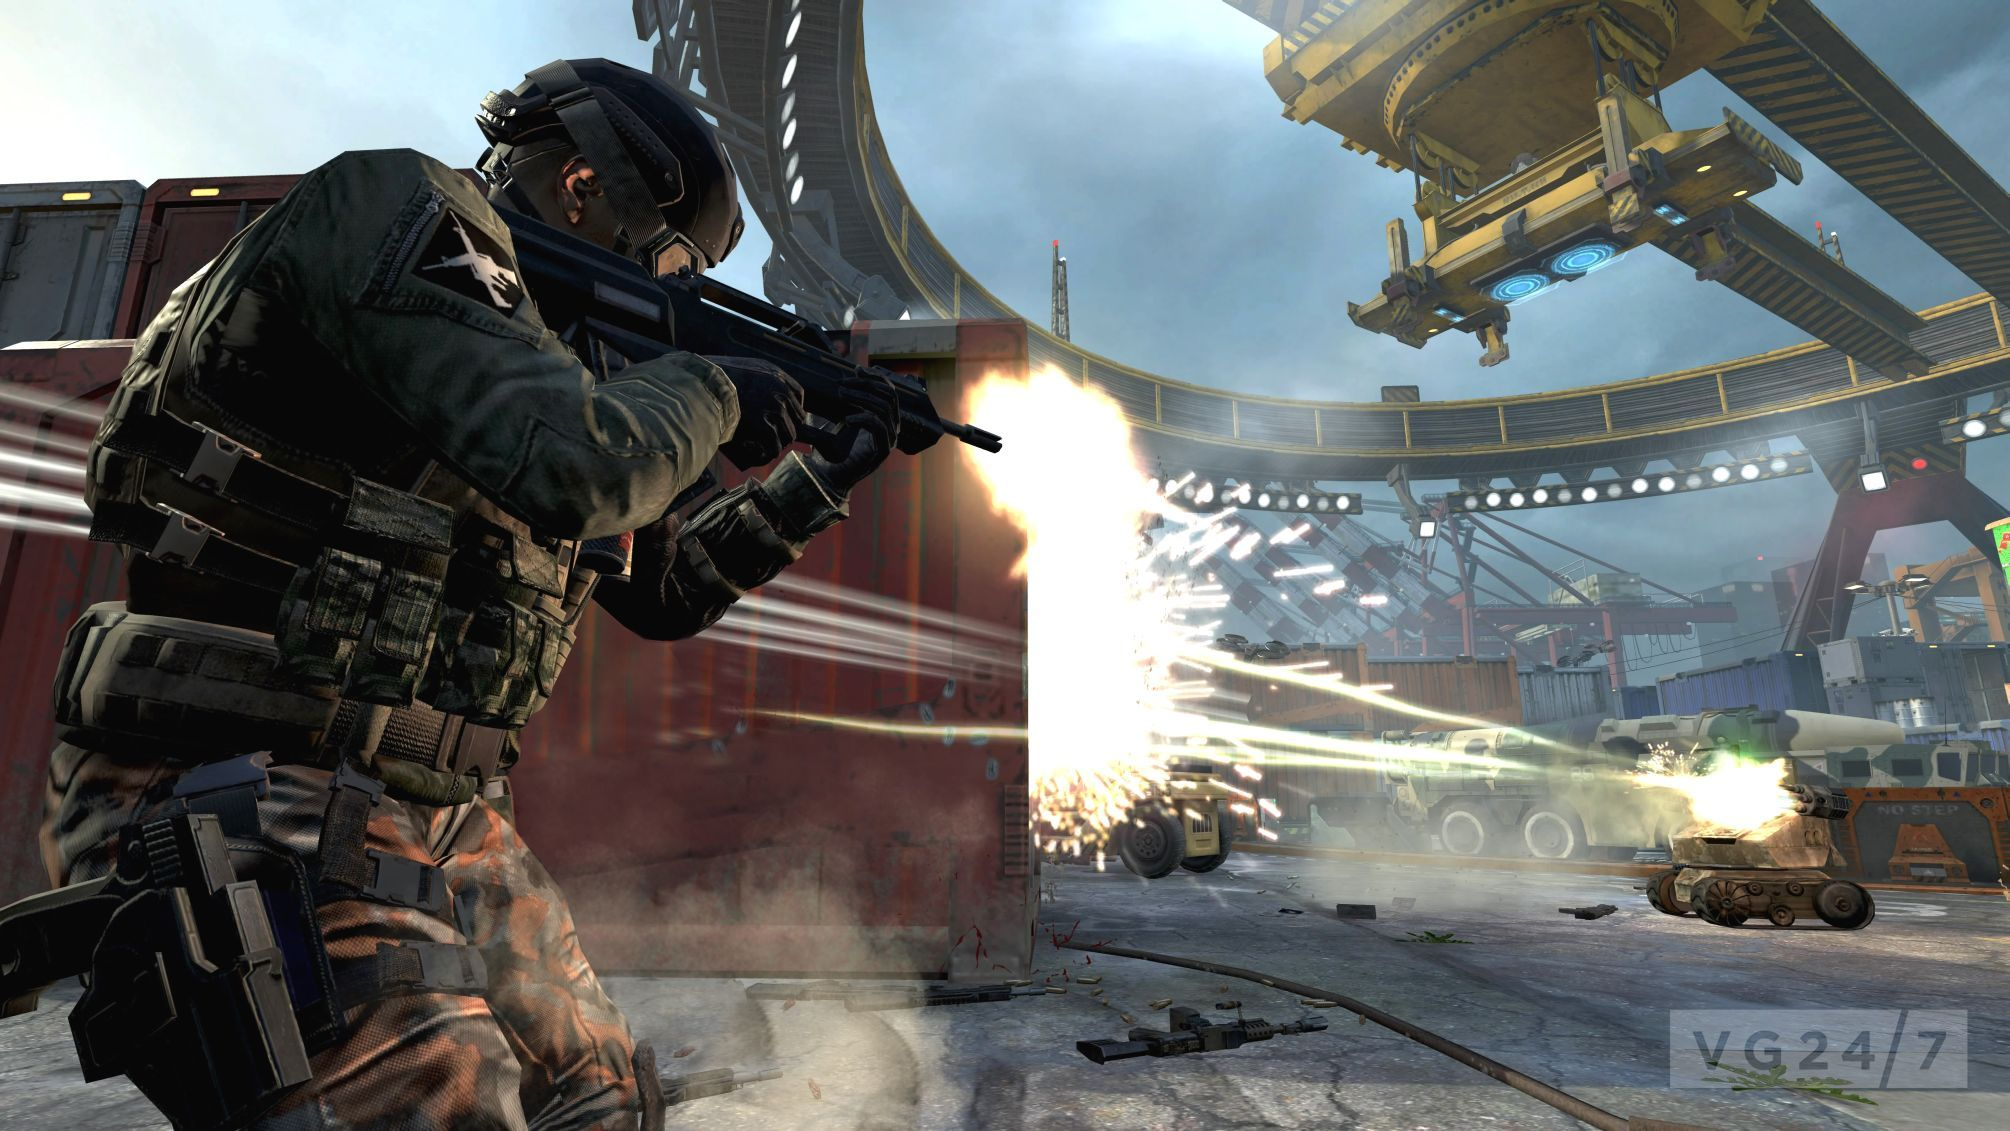 Call of Duty: Black Ops 2 E3 screens make excellent wallpapers